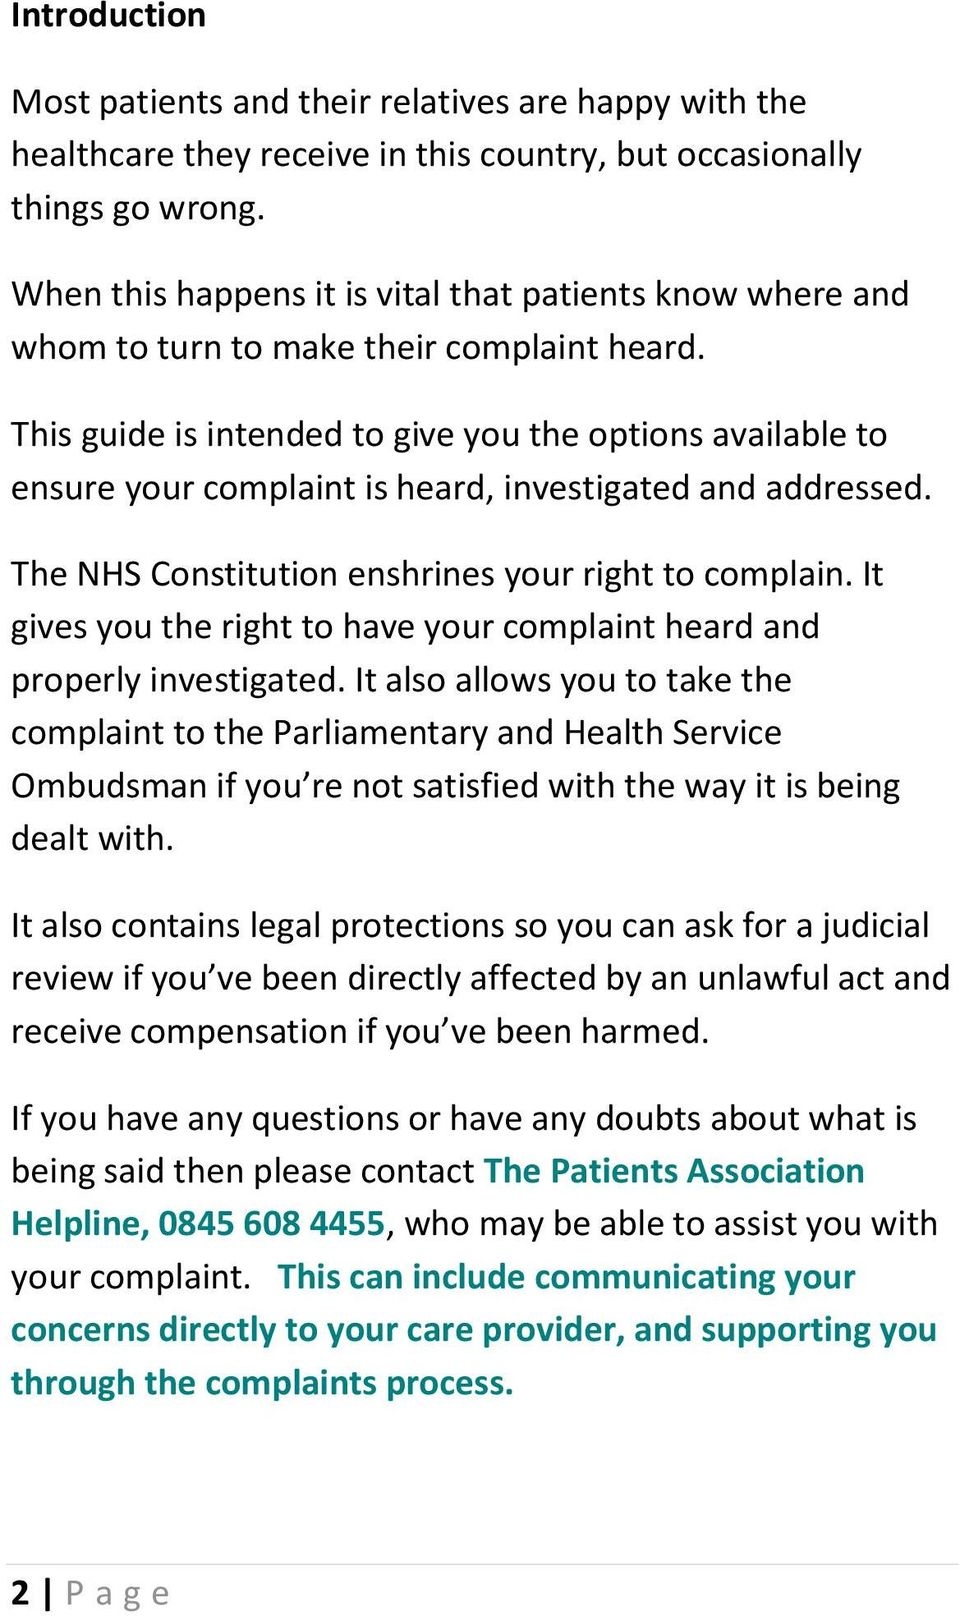 This guide is intended to give you the options available to ensure your complaint is heard, investigated and addressed. The NHS Constitution enshrines your right to complain.